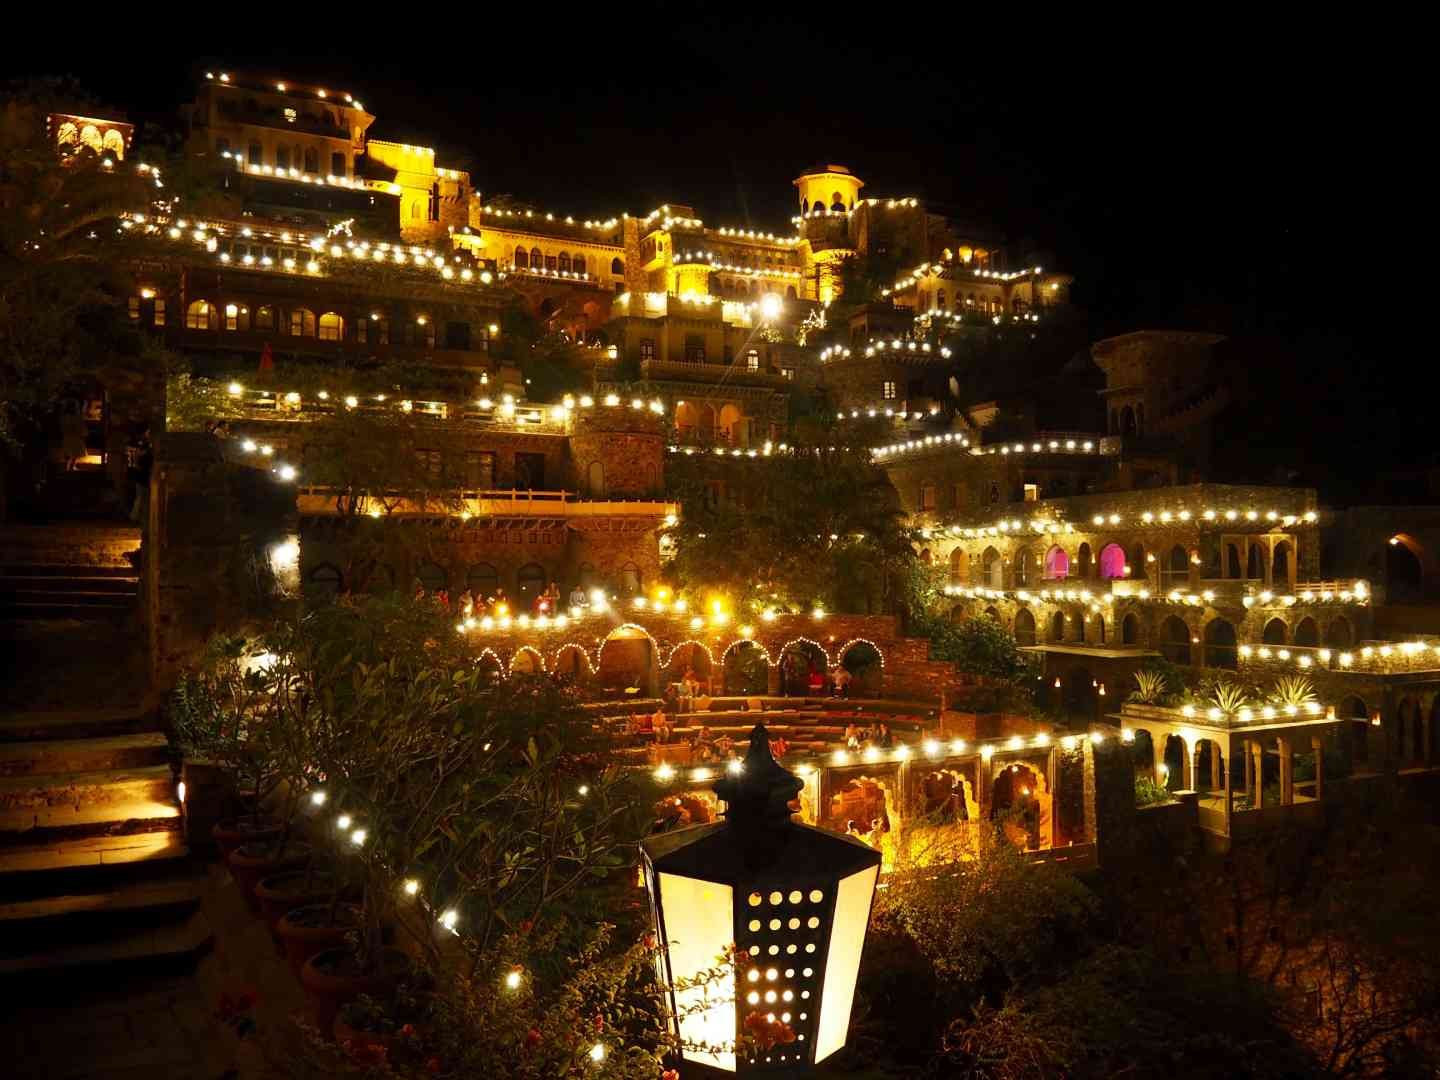 NEEMRANA FORT PALACE AT NIGHT